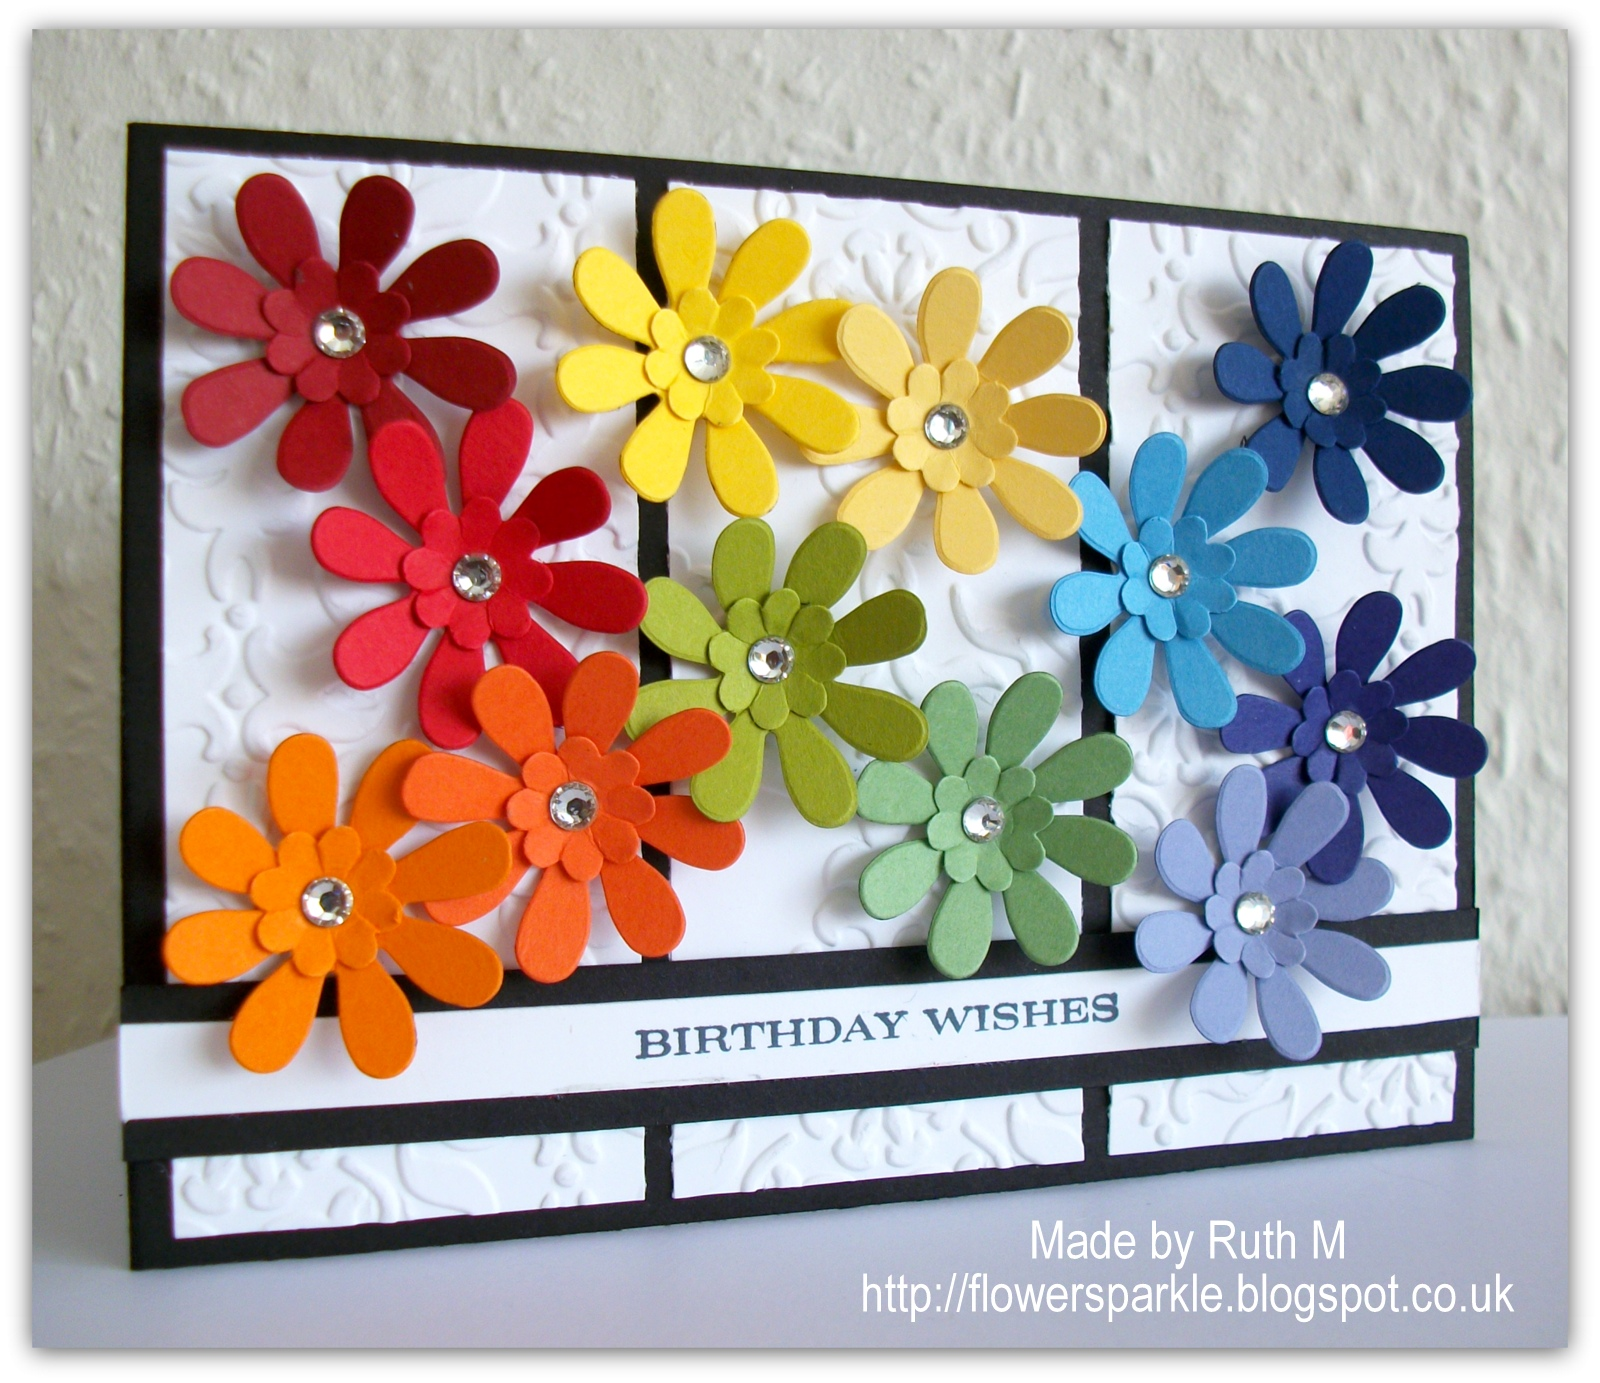 Flower Sparkle: Roy G. Biv Flowers Birthday Wishes Card